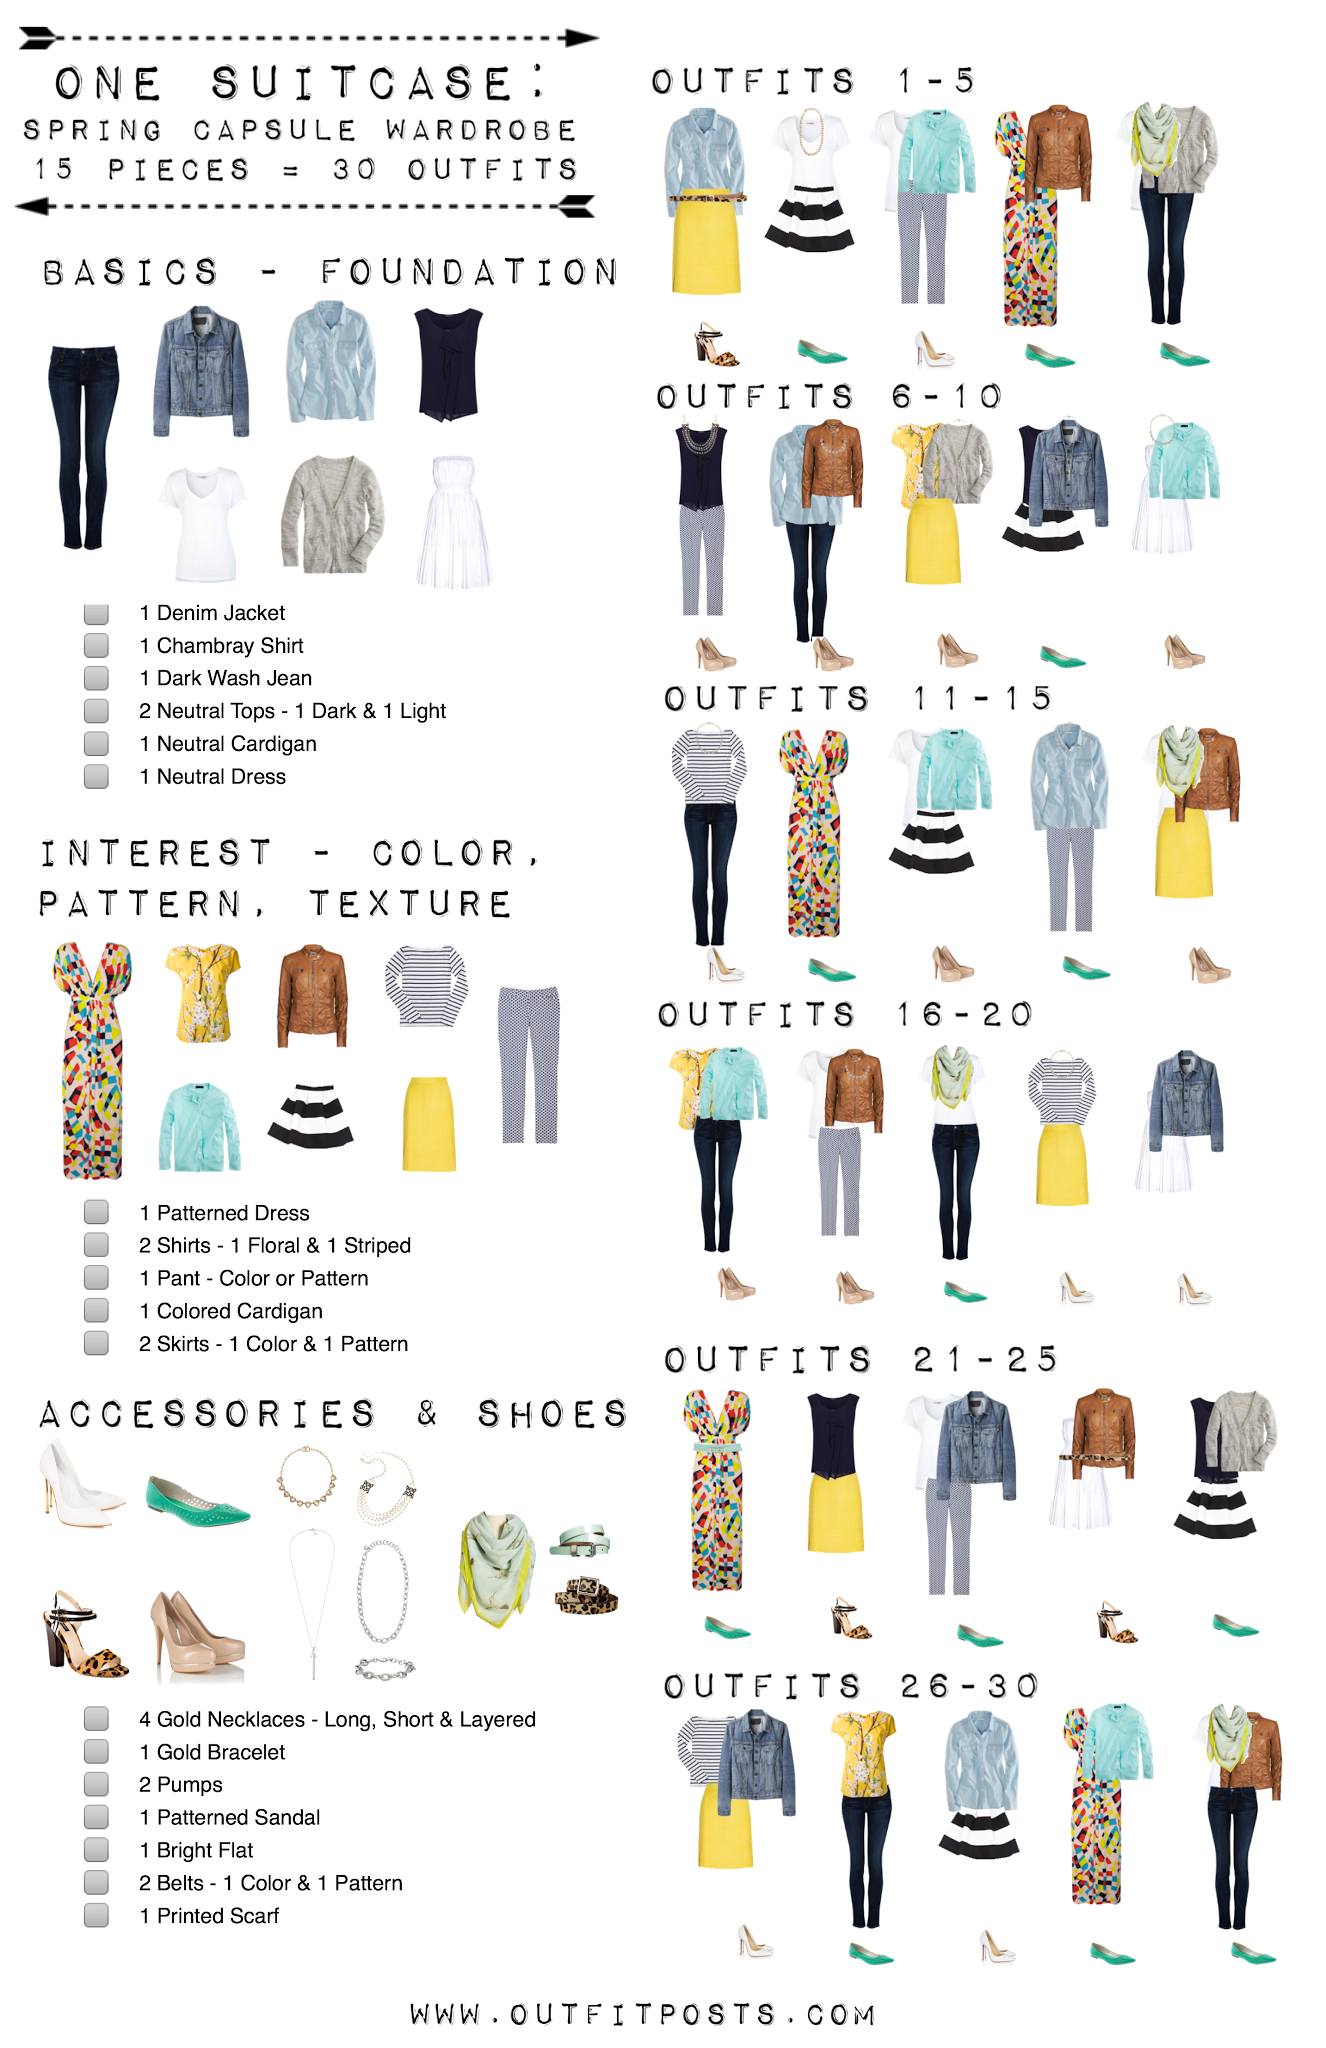 15 easy pieces for 30 summer outfits capsule wardrobe checklist. Black Bedroom Furniture Sets. Home Design Ideas